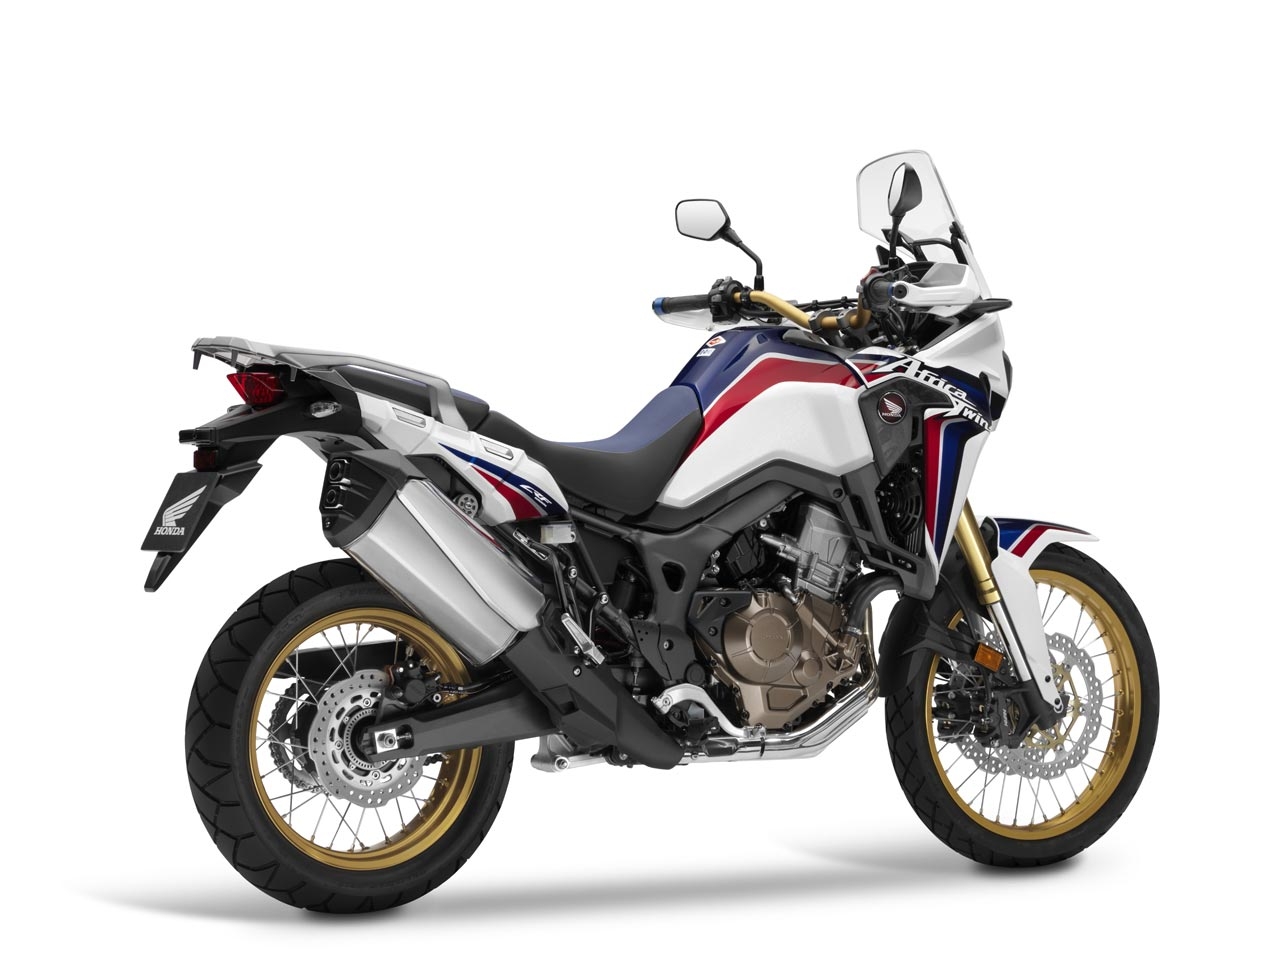 unbreakable rc car with Honda Africa Twin Colors Base Price And More Tech Features Revealed Photo Gallery 98115 on RacingXNissan350ZElectricRTRRCCarWHO furthermore Umbrellas as well 322215282787 additionally Honda Africa Twin Colors Base Price And More Tech Features Revealed Photo Gallery 98115 together with 777 198 3CH A Control Infrared Control RC Mini Car for Android OS.